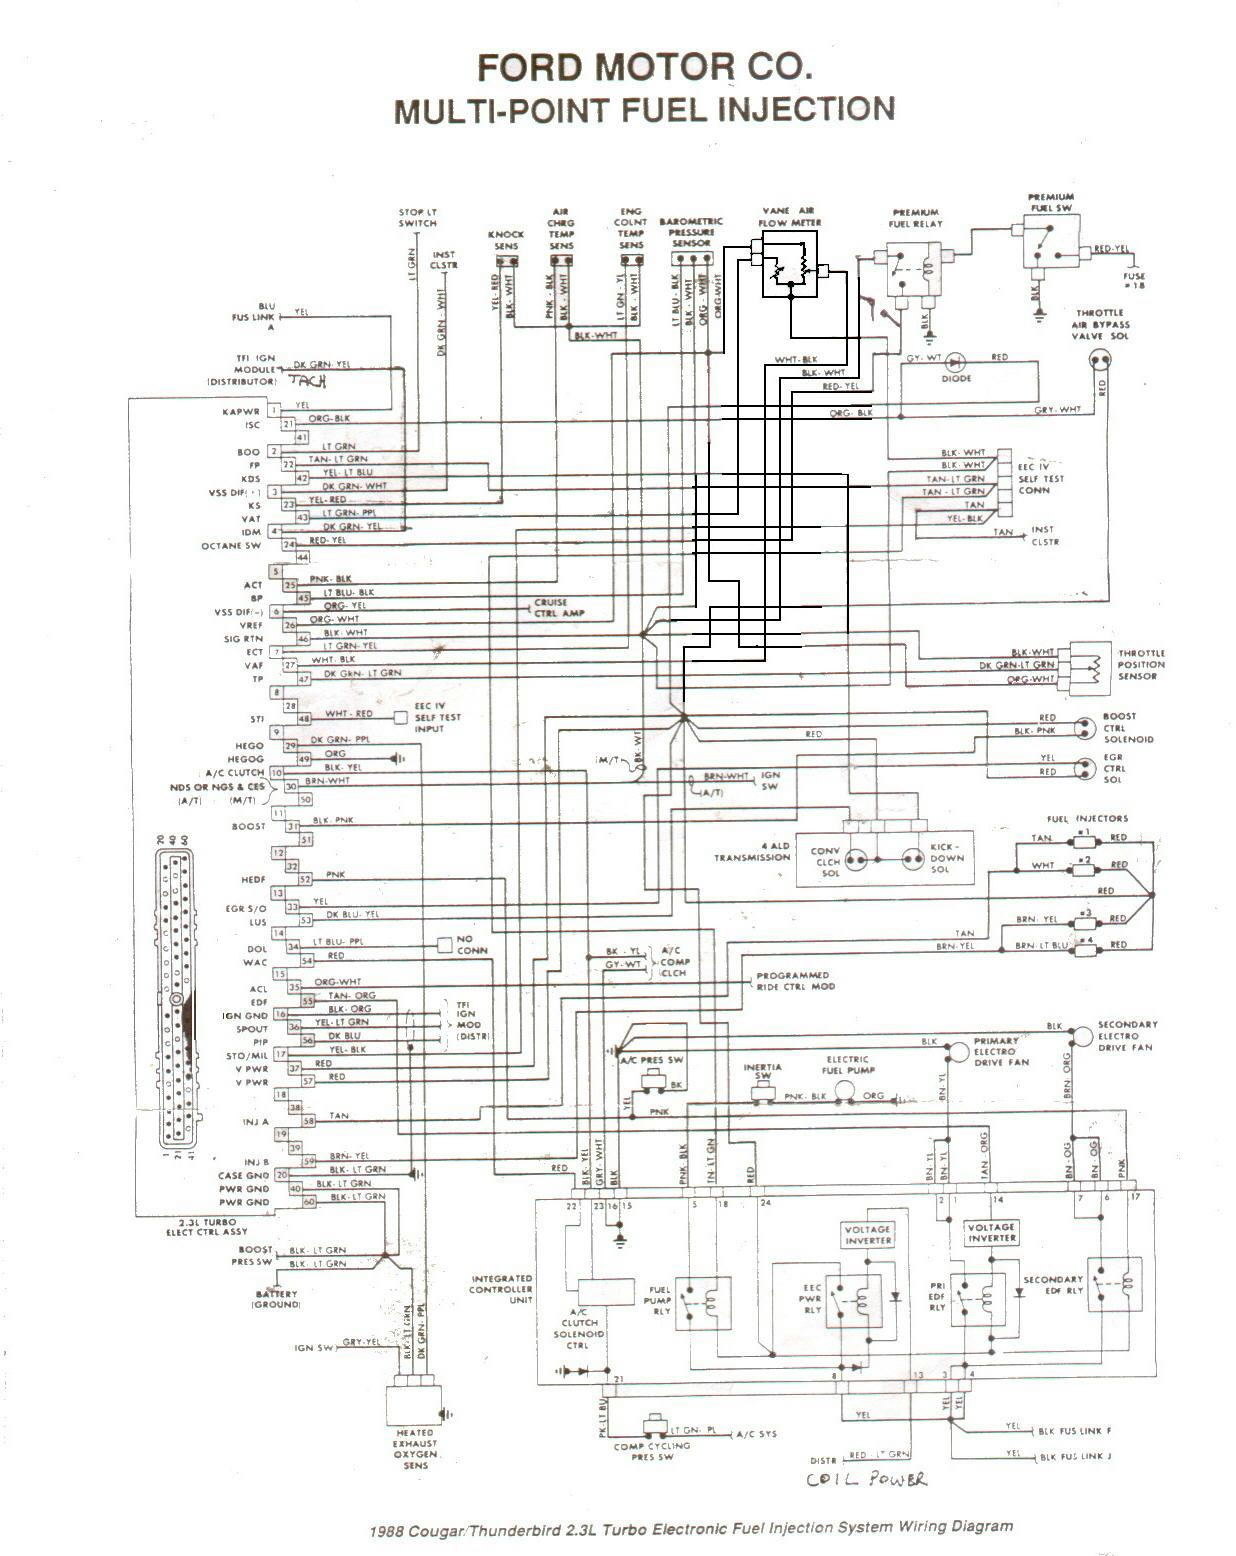 87 88_turbo_coupe ford 2 3l turbo motor swap wiring diagrams ford 390 engine wiring diagram at soozxer.org